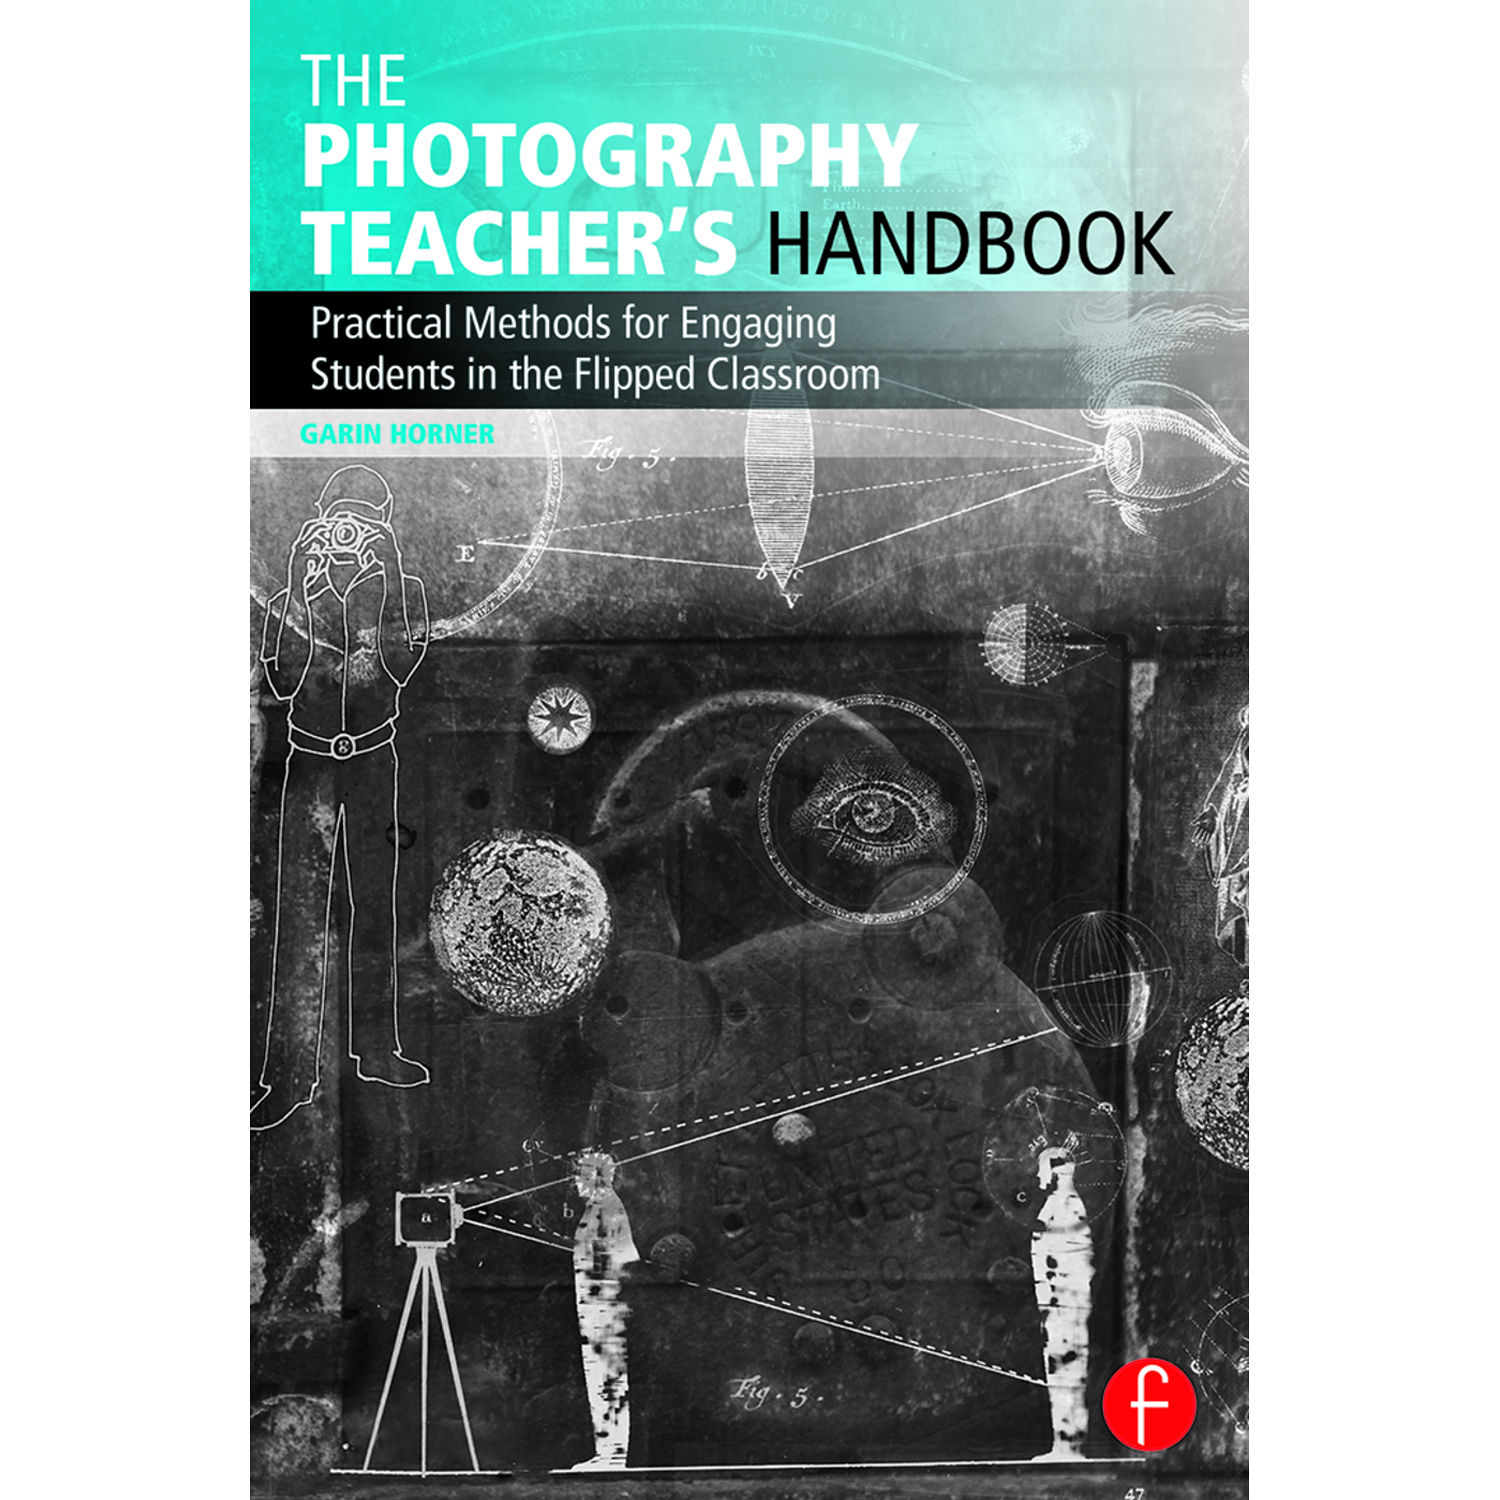 THE PHOTOGRAPHY TEACHER'S HANDBOOK: PRACTICAL METHODS FOR ENGAGING STUDENTS IN THE FLIPPED